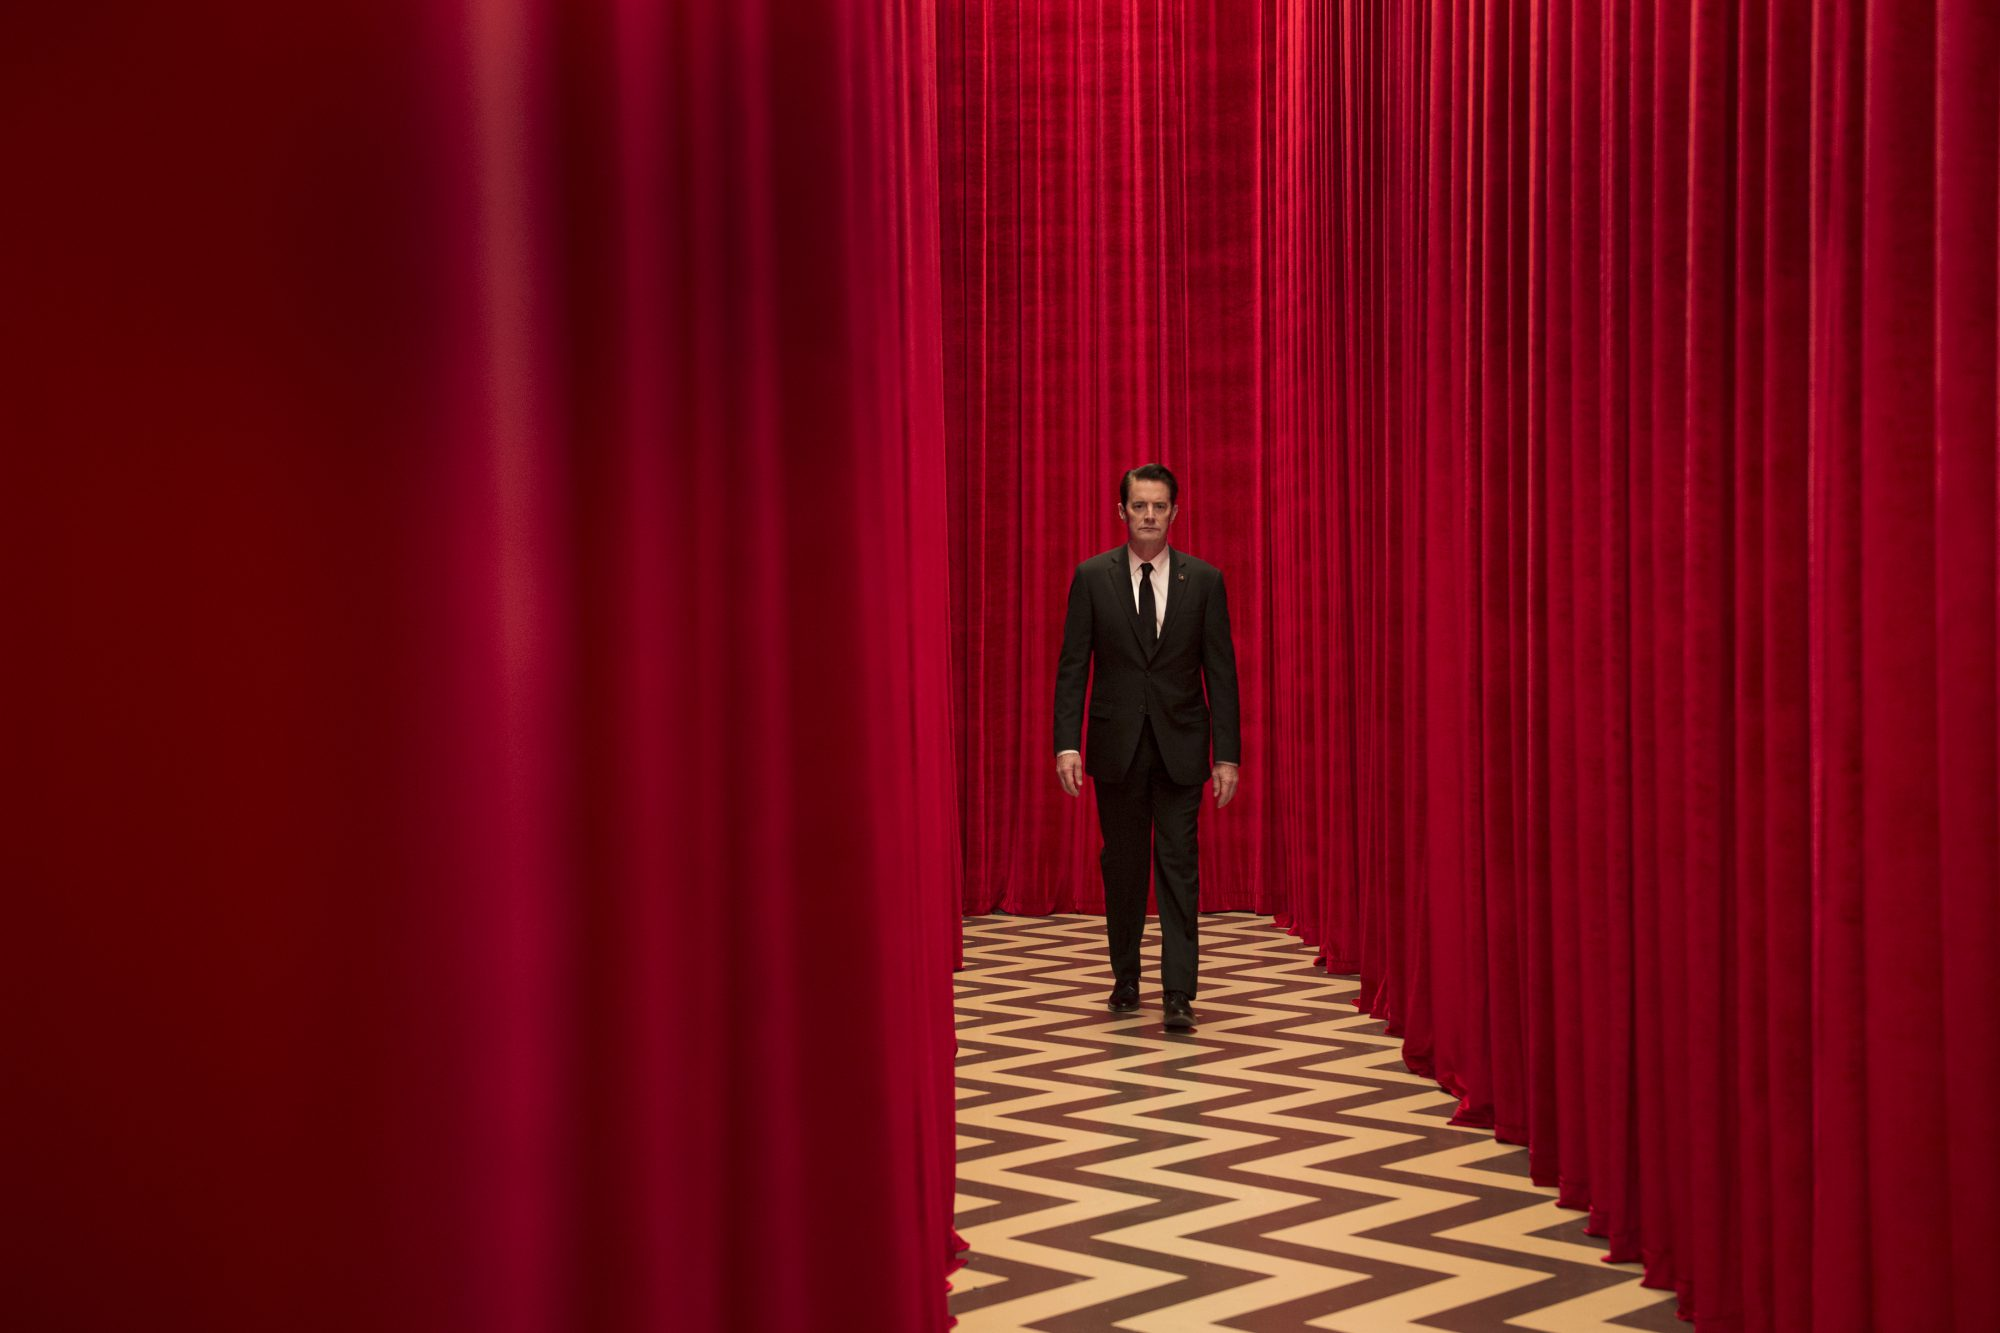 rr 21097 r 1 e1495210347486 Recapping Twin Peaks: The Return: Parts 1 and 2